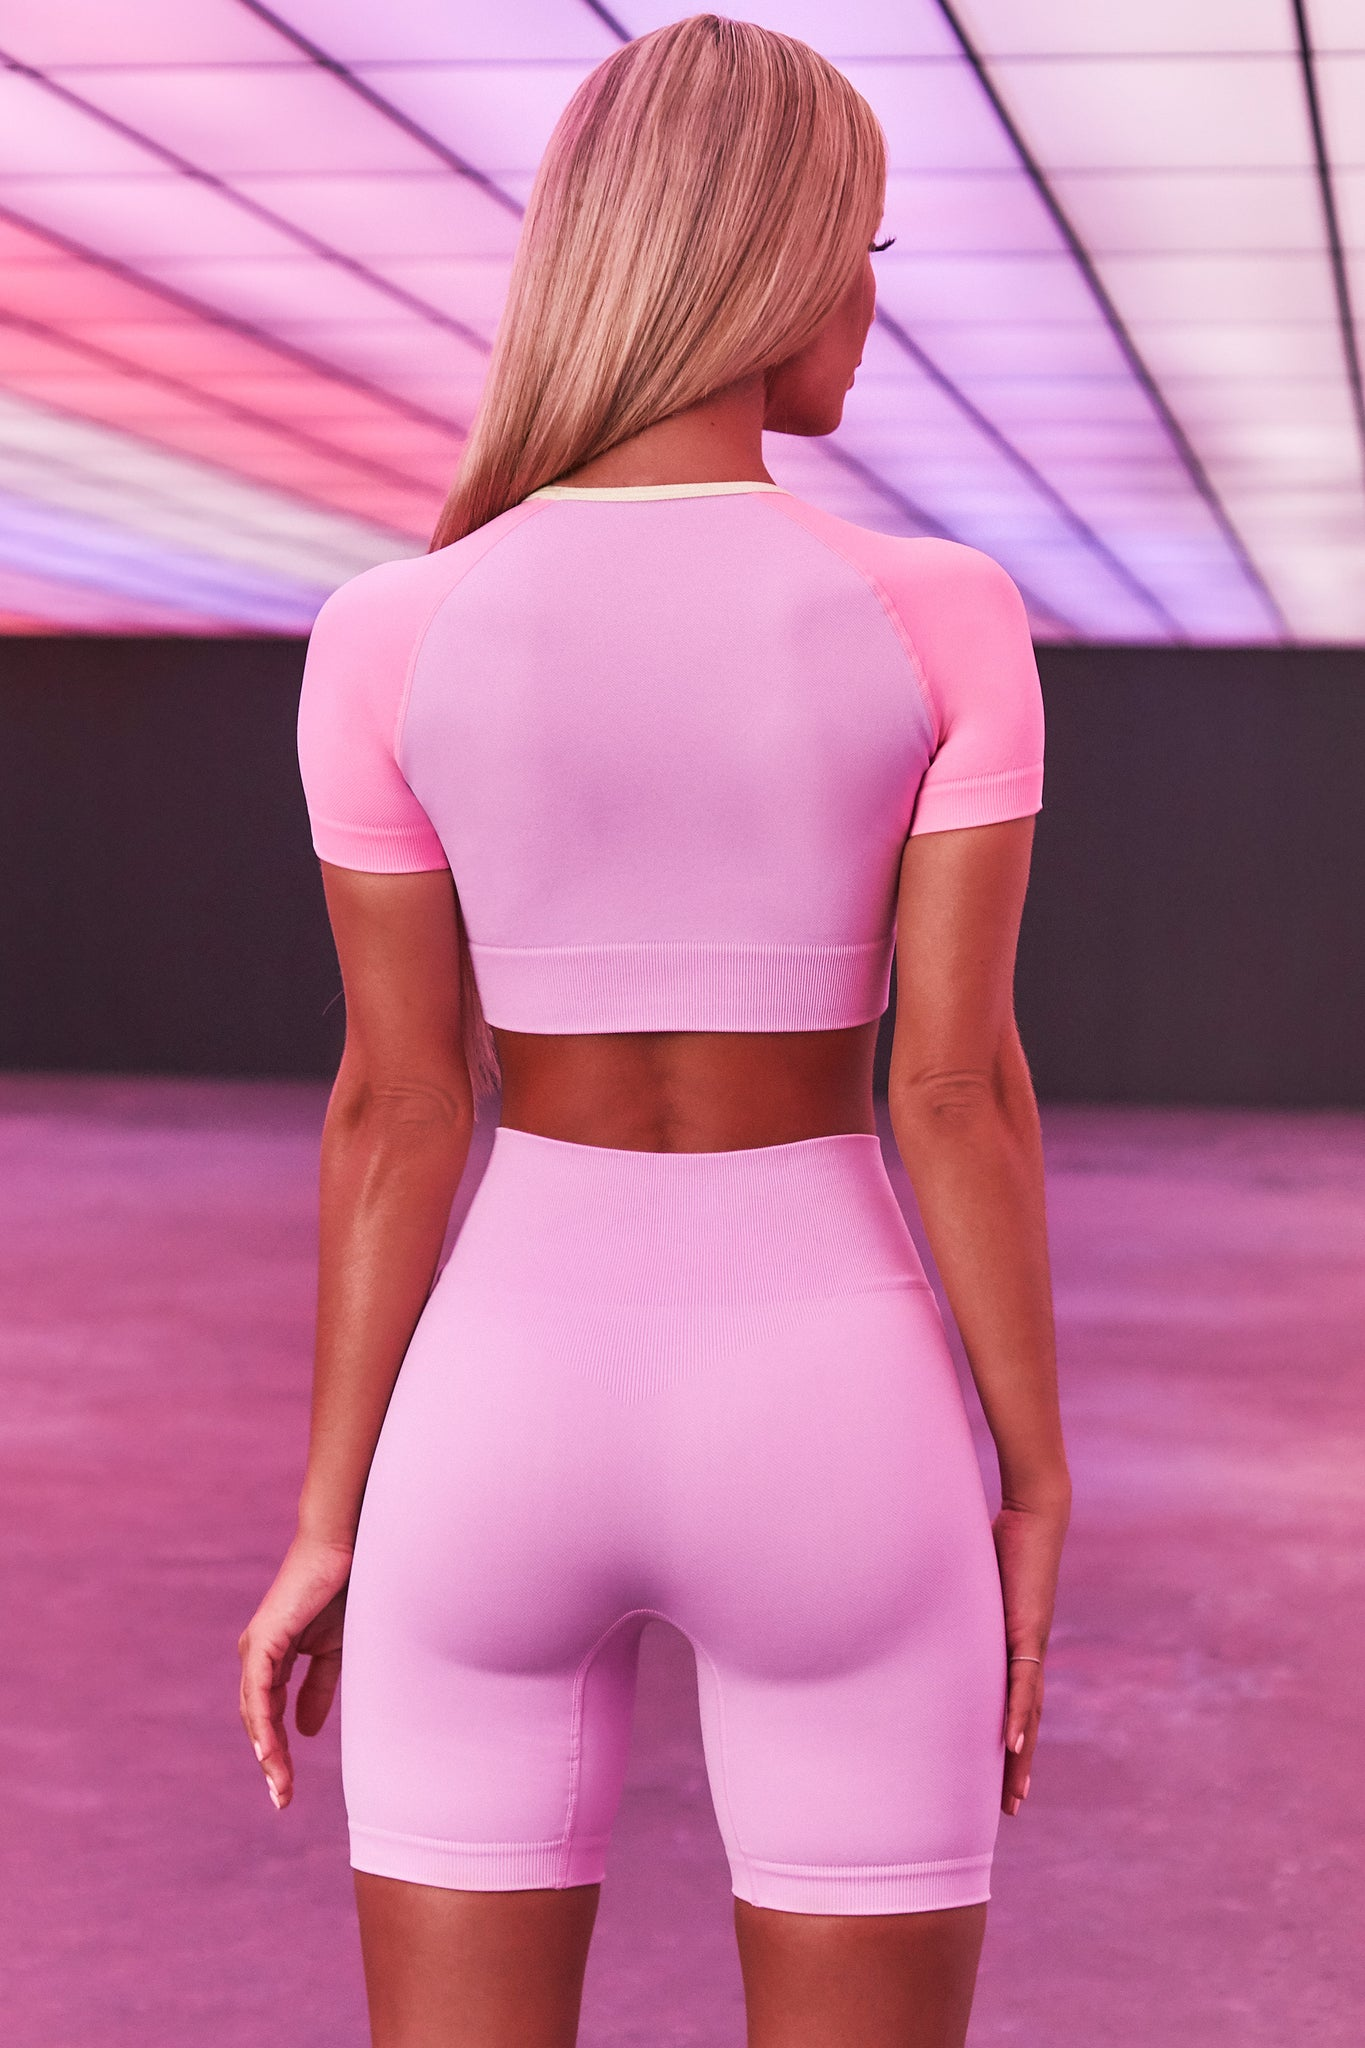 Lilac seamless short sleeve crop top with pink sleeves and 3D branding across the chest. Image 3 of 6.